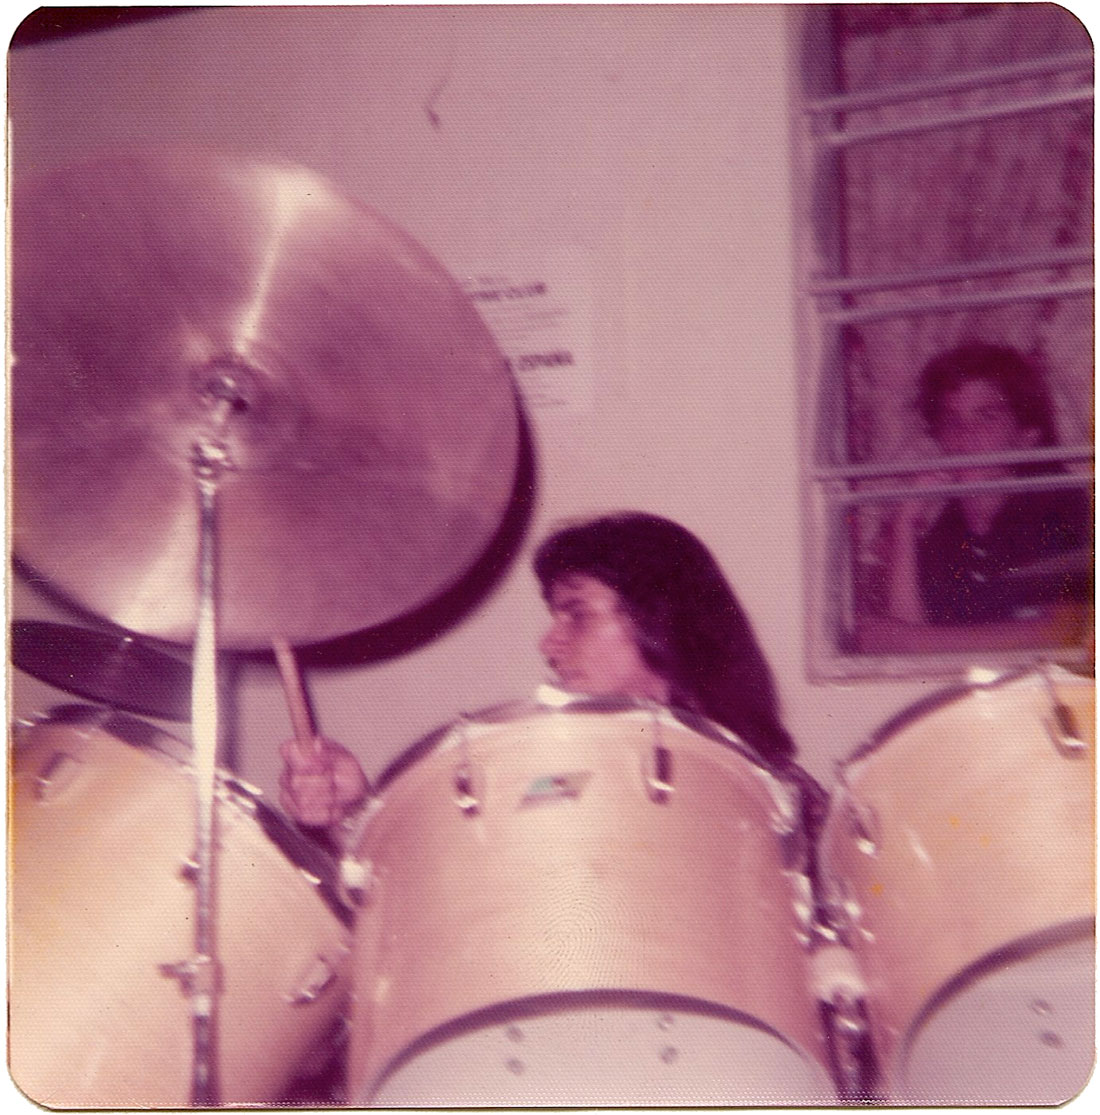 Carlos Segura at The Big-5 Club on March 30, 1975